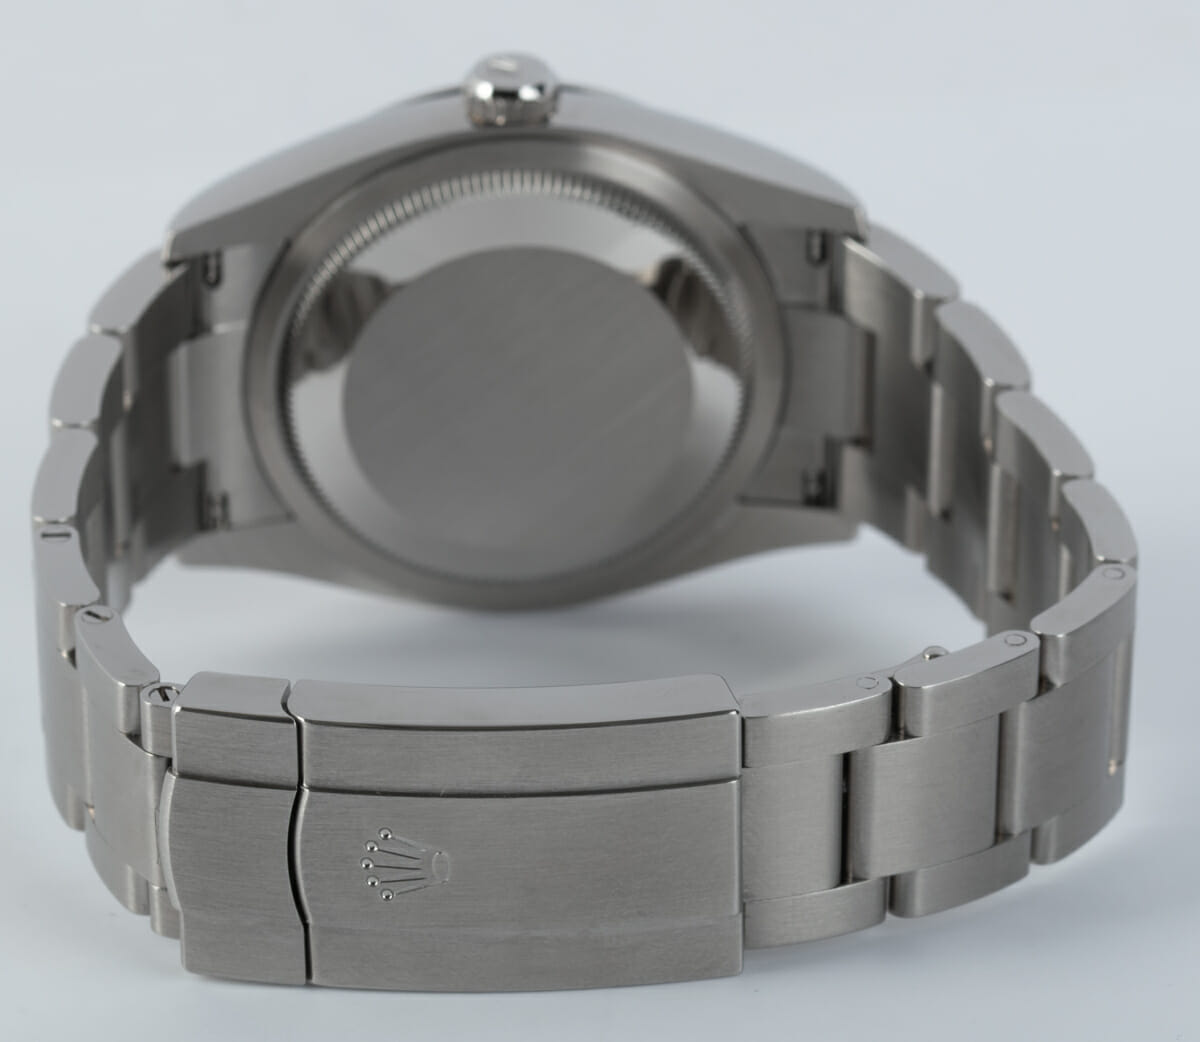 Rear / Band View of Oyster Perpetual 36